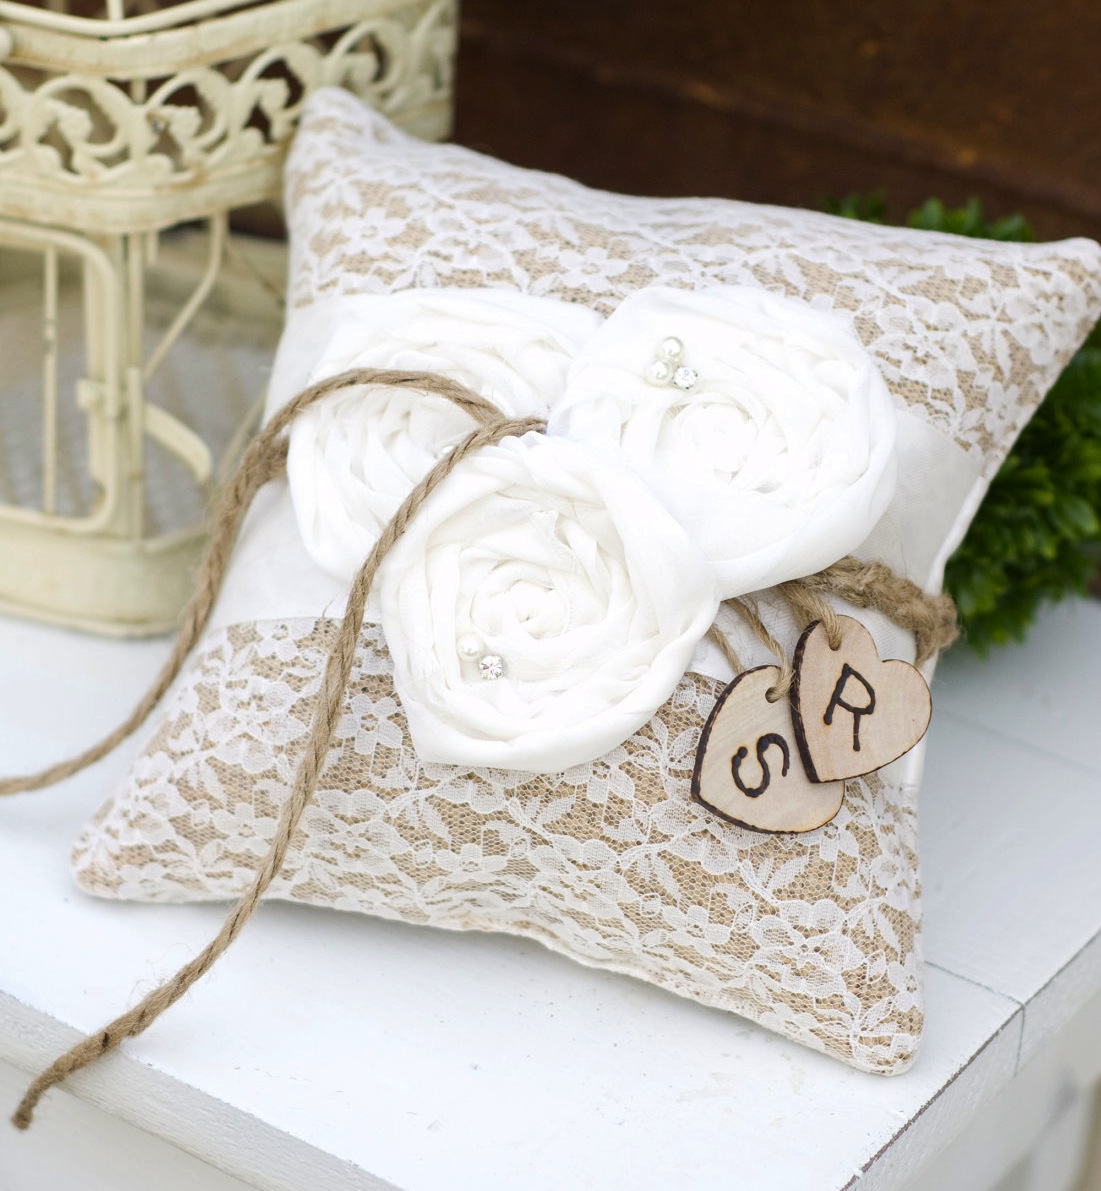 45 best images about wedding ring pillow on pinterest ring bearer pillows rustic wedding rings and wedding ring - Wedding Ring Bearer